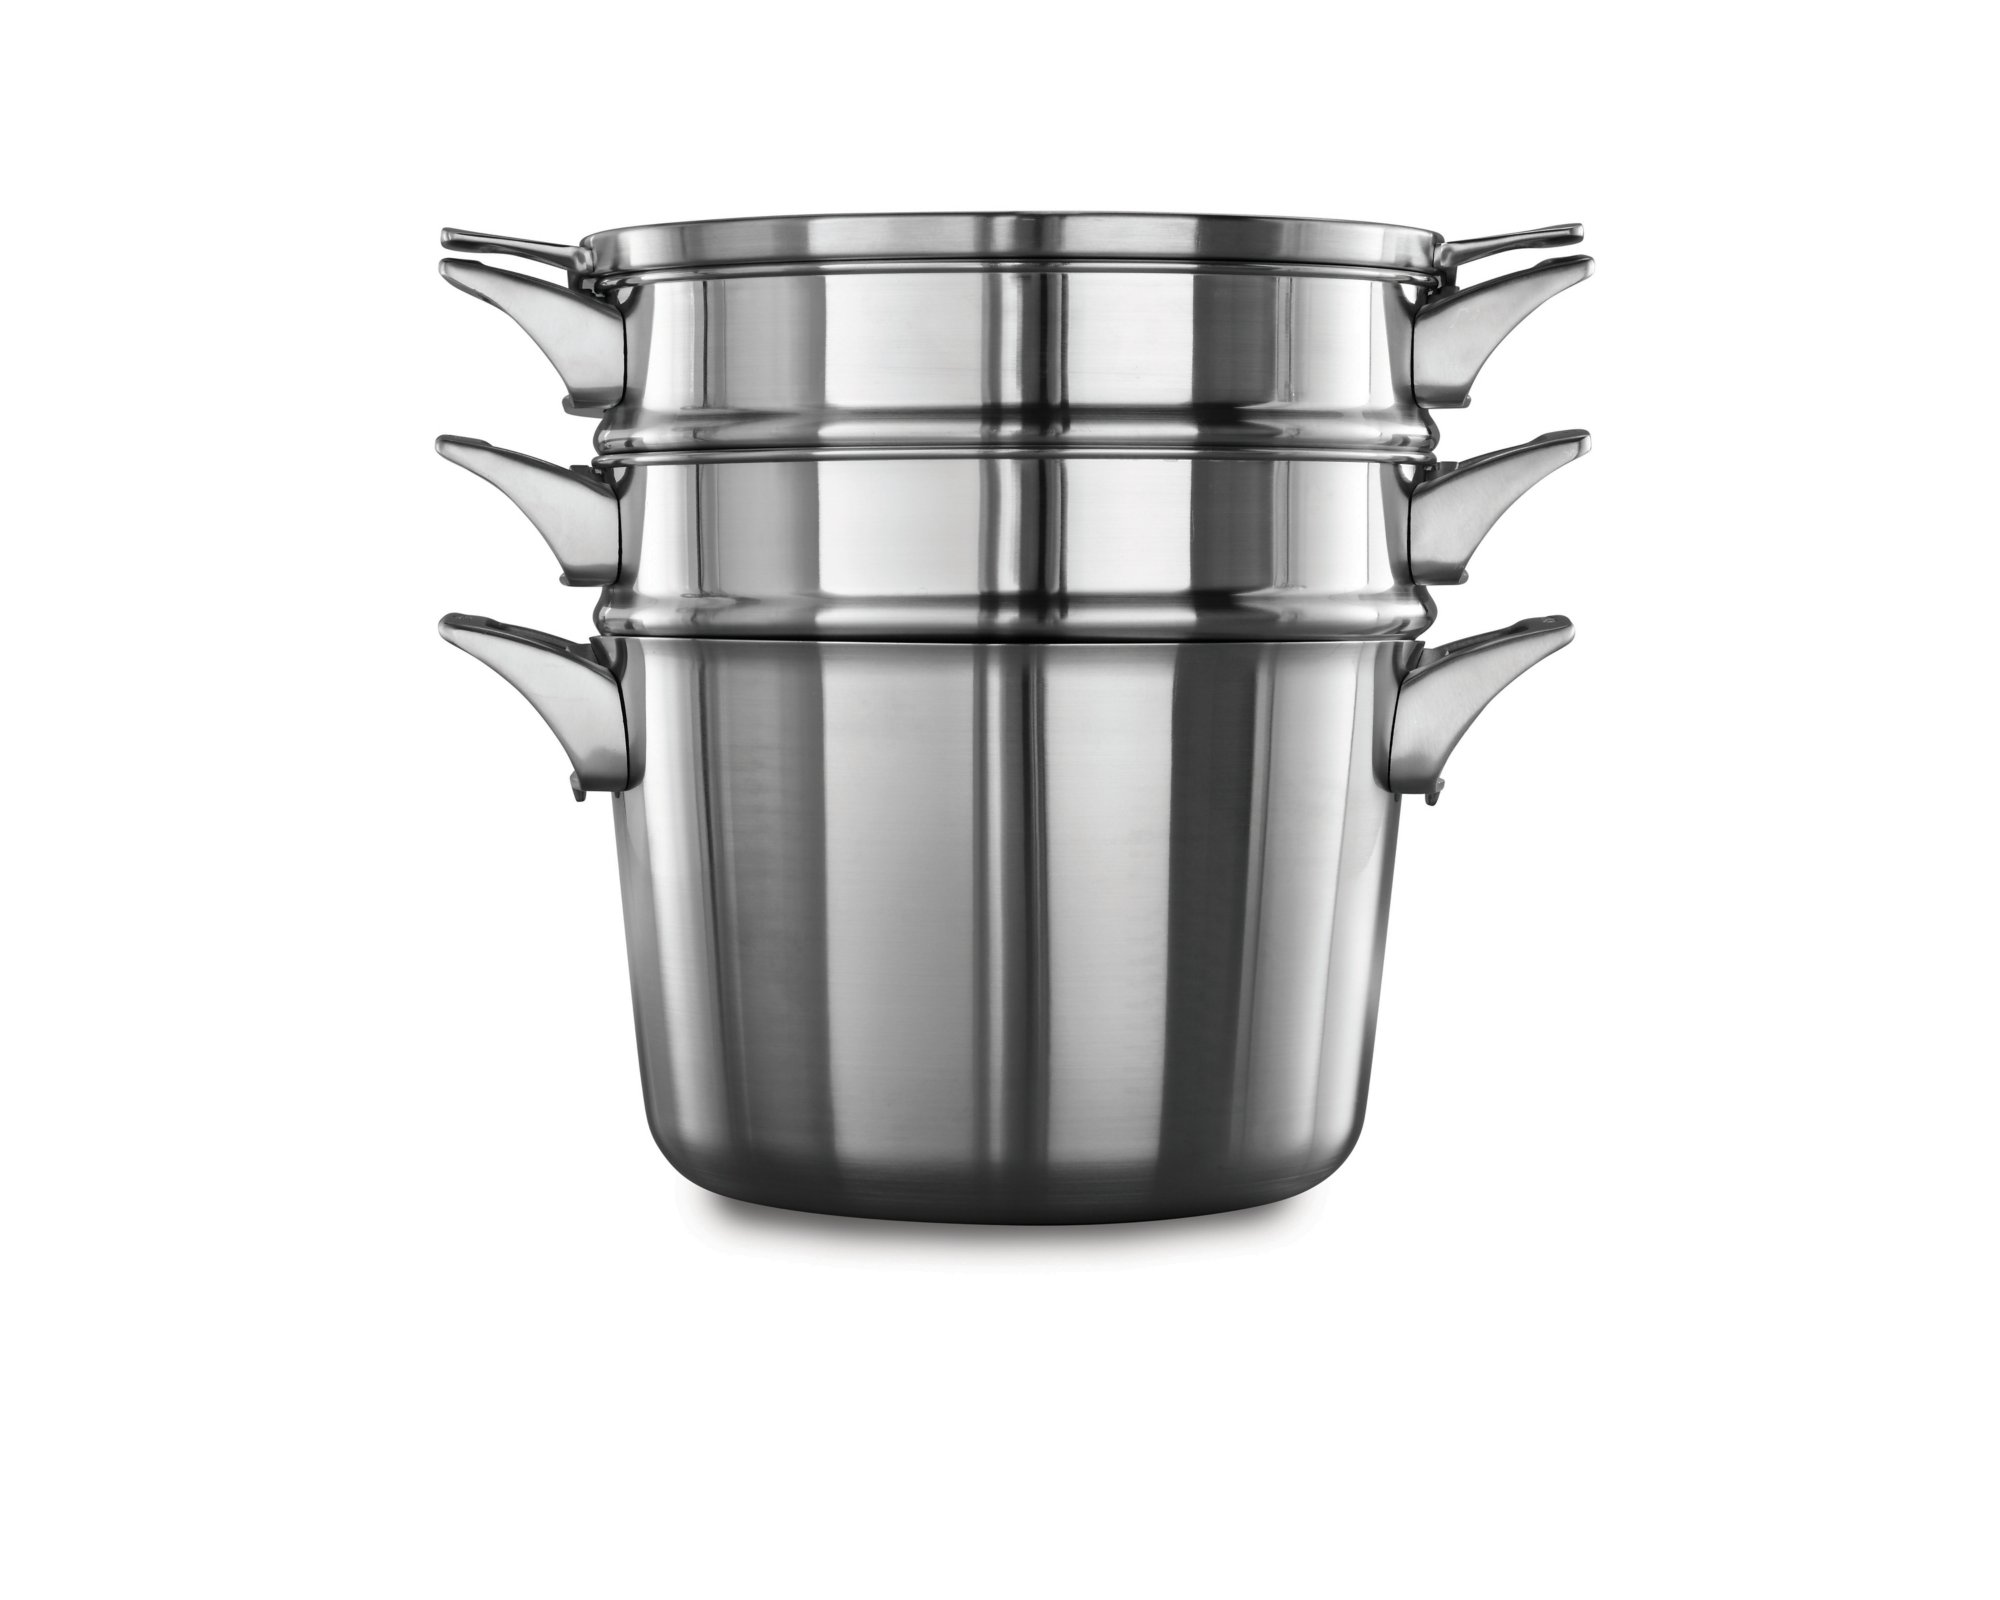 Calphalon Premier™ Space Saving Stainless Steel 8 qt. Multi-Pot